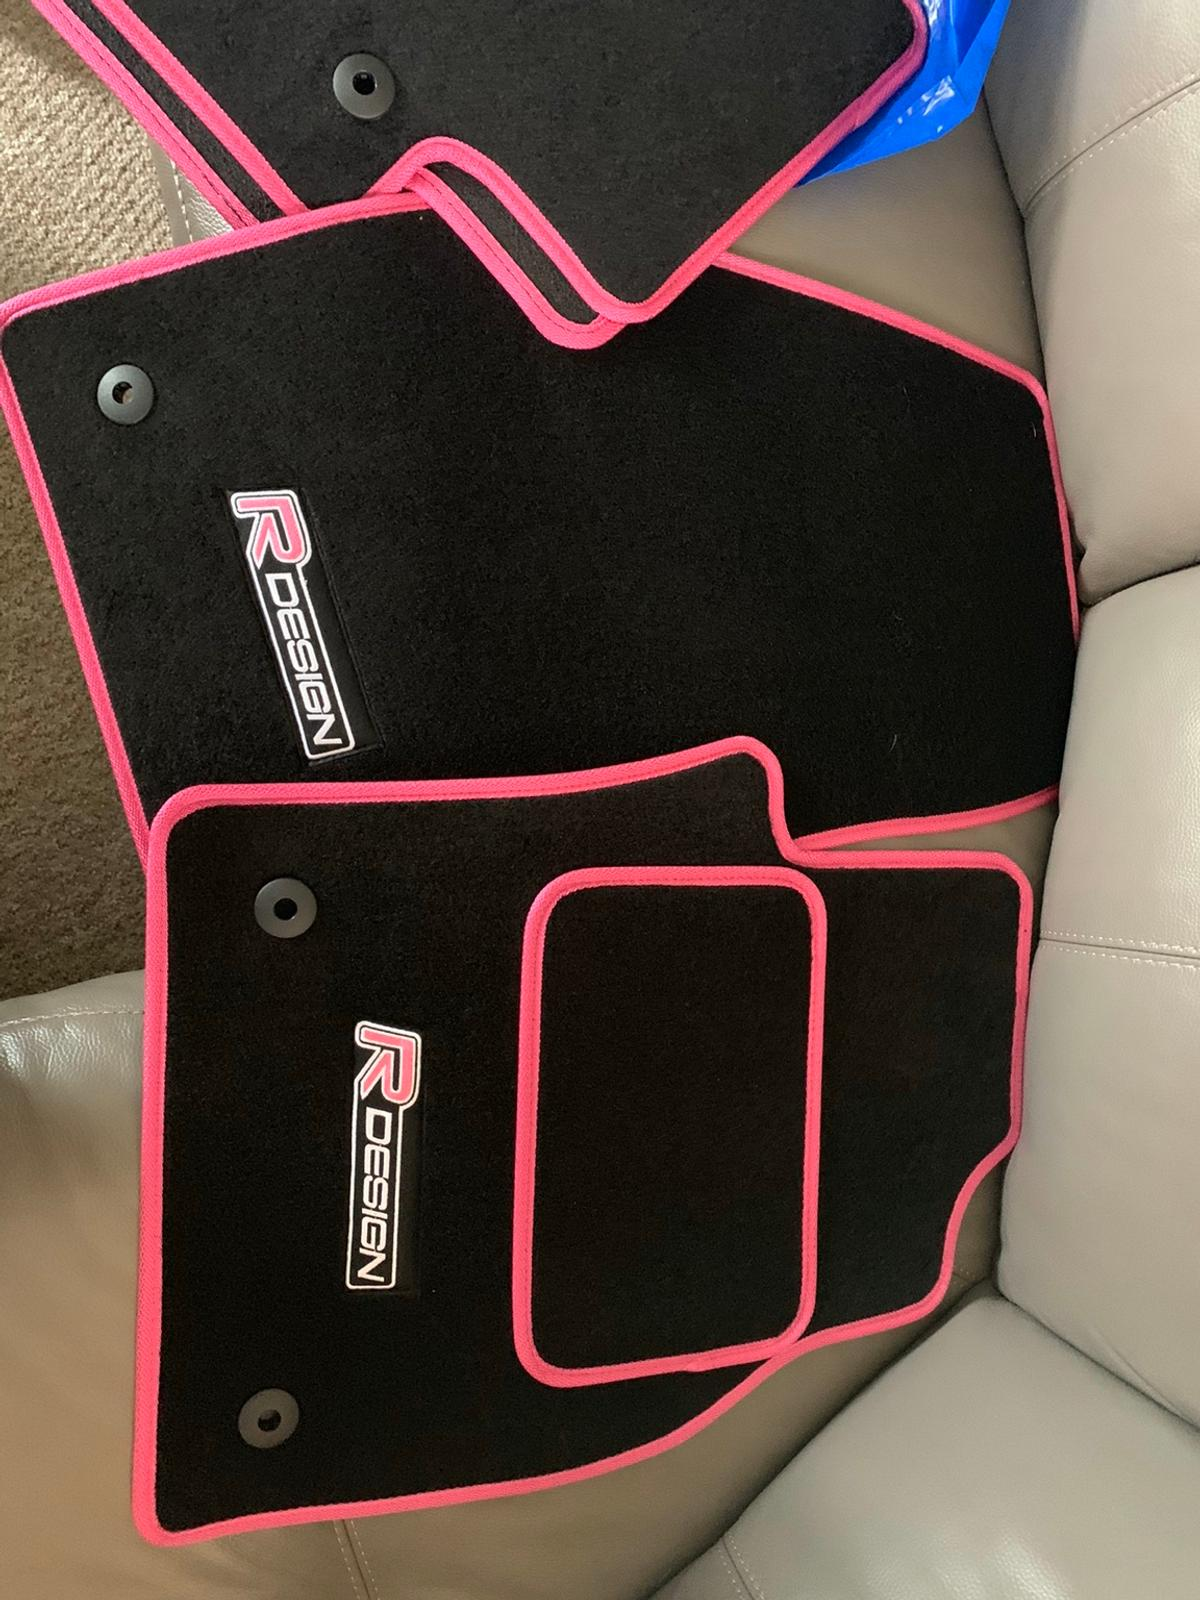 Mats I had made for my auto c30 but only in the car a day before I sold it and bought same ones for my xc60, will fit automatic or manual